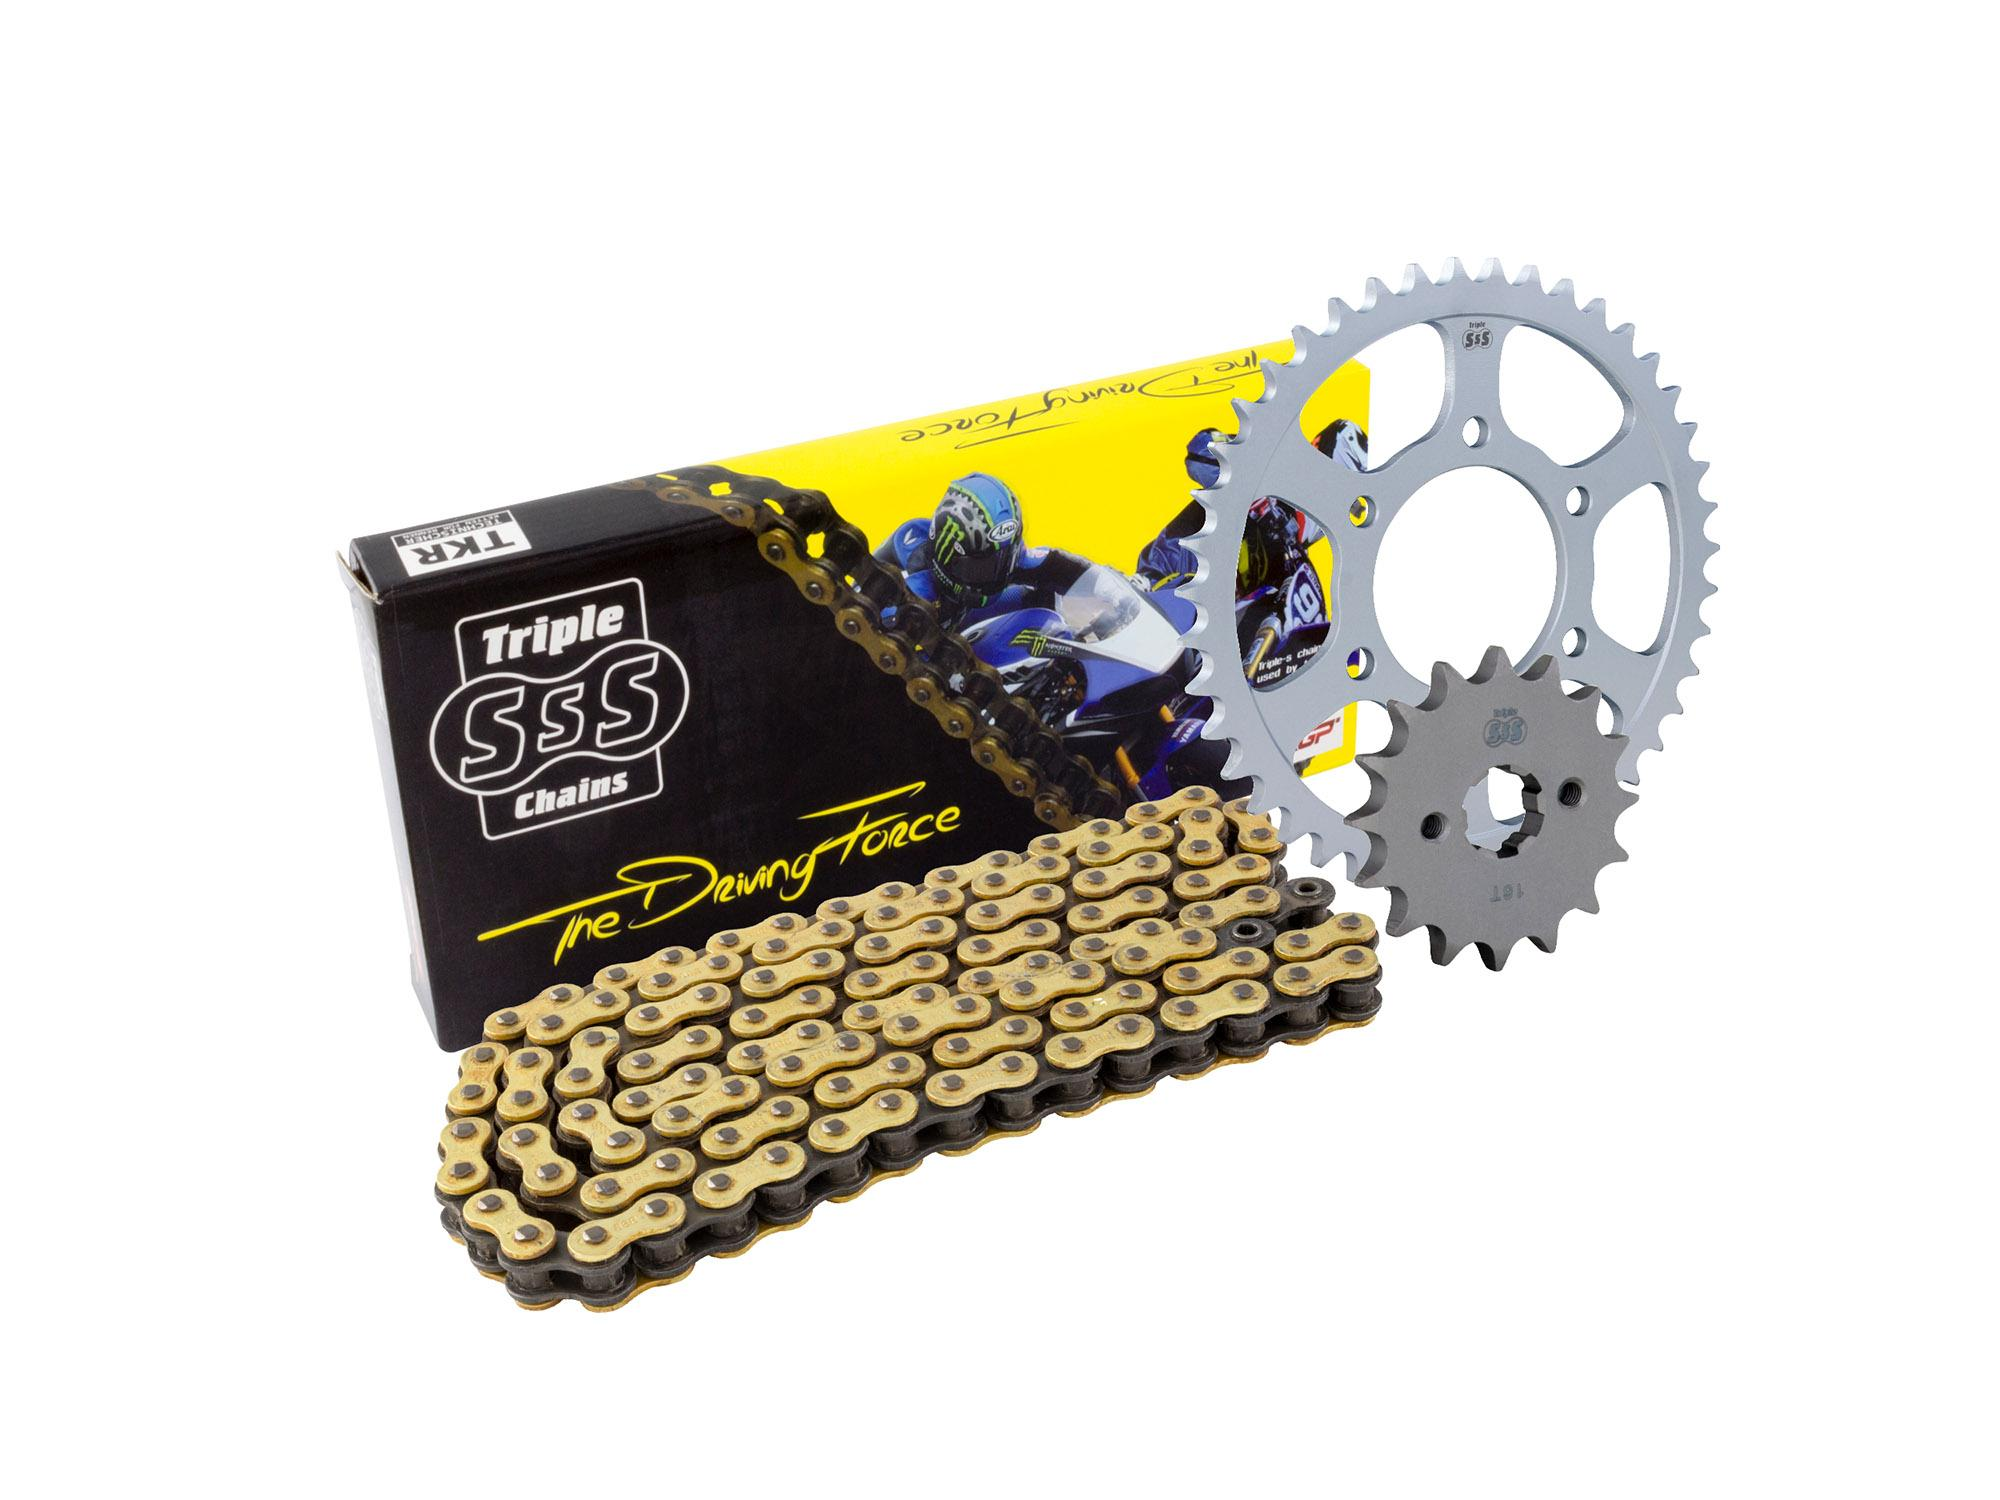 Suzuki GSX-R750 Y/K1-K3 Fuel Inj SRAD 00-03 Chain & Sprocket Kit: 17T Front, 42T Rear, HD O-Ring Gold Chain 525H 110 Link